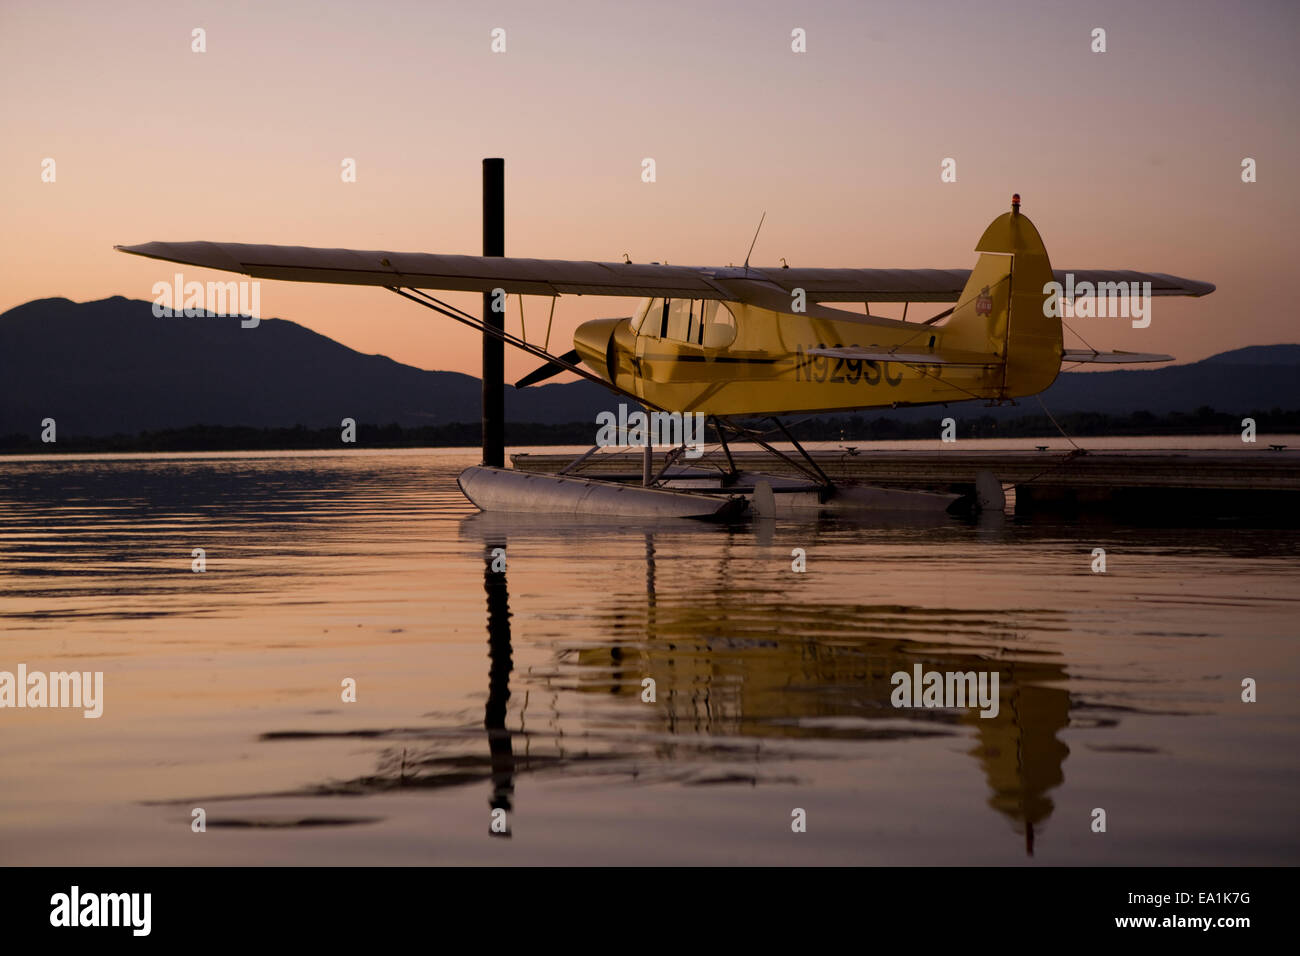 Piper Cub on Floats docked at the Seaplane Splash-In, Lakeport, California, Lake County, California - Stock Image